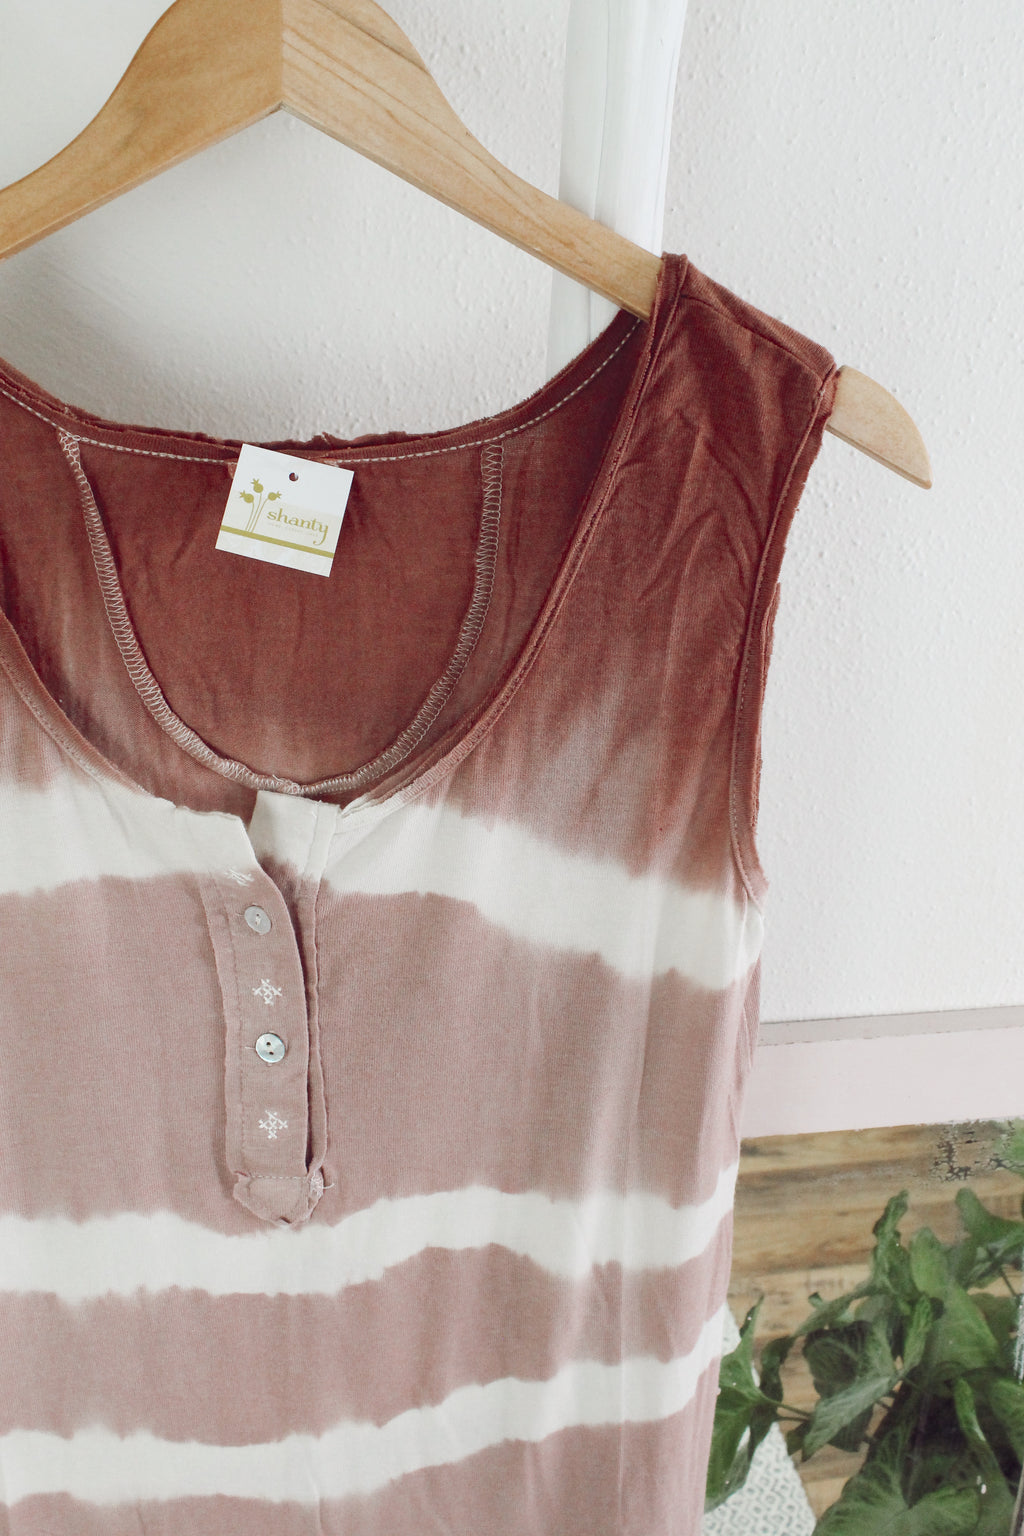 Gone with the Stripe Knit Tank - Strawberry